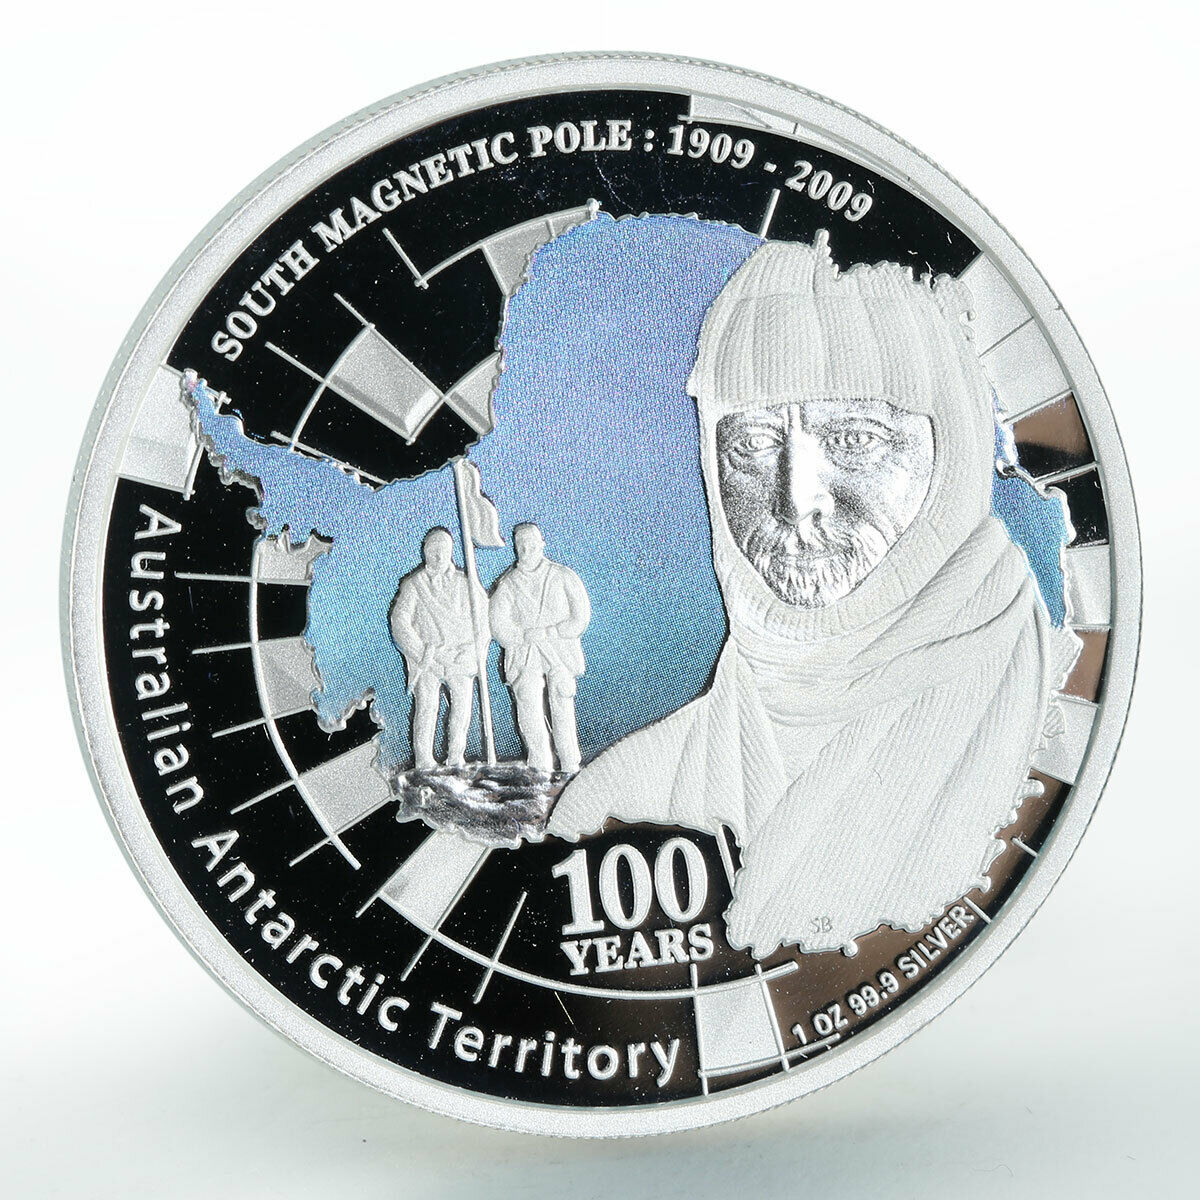 Australia 1 dollar Antarctic South Magnetic Pole silver coin 1909 - 2009